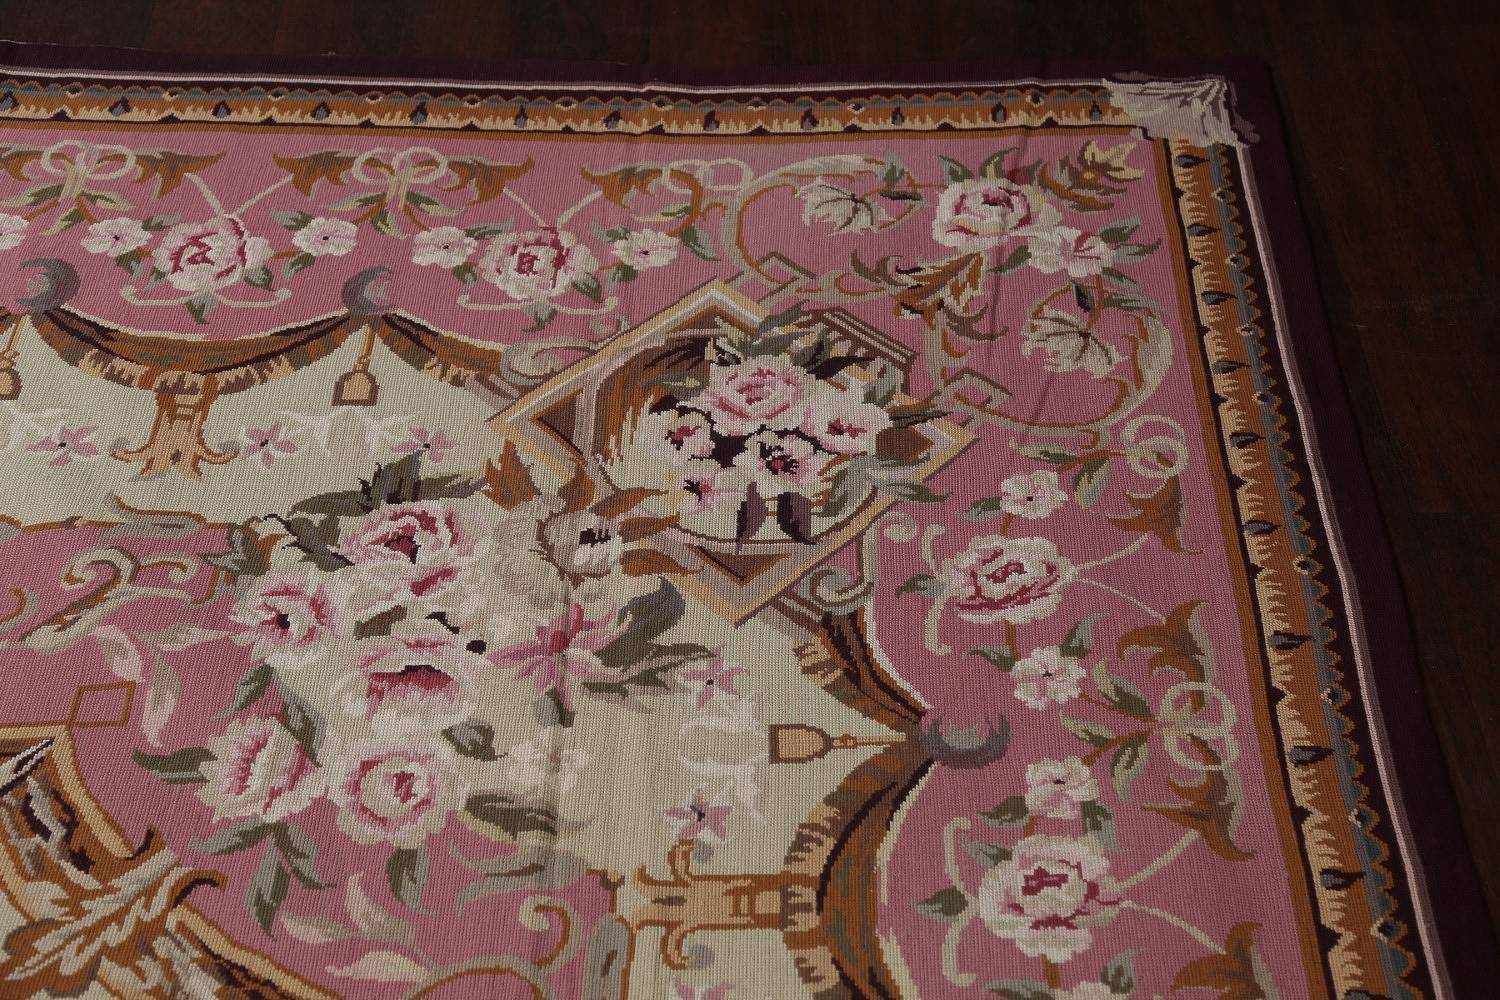 Floral Pink Savonnerie Needlepoint Aubusson Chinese Oriental Hand-Woven Area Rug 8x11